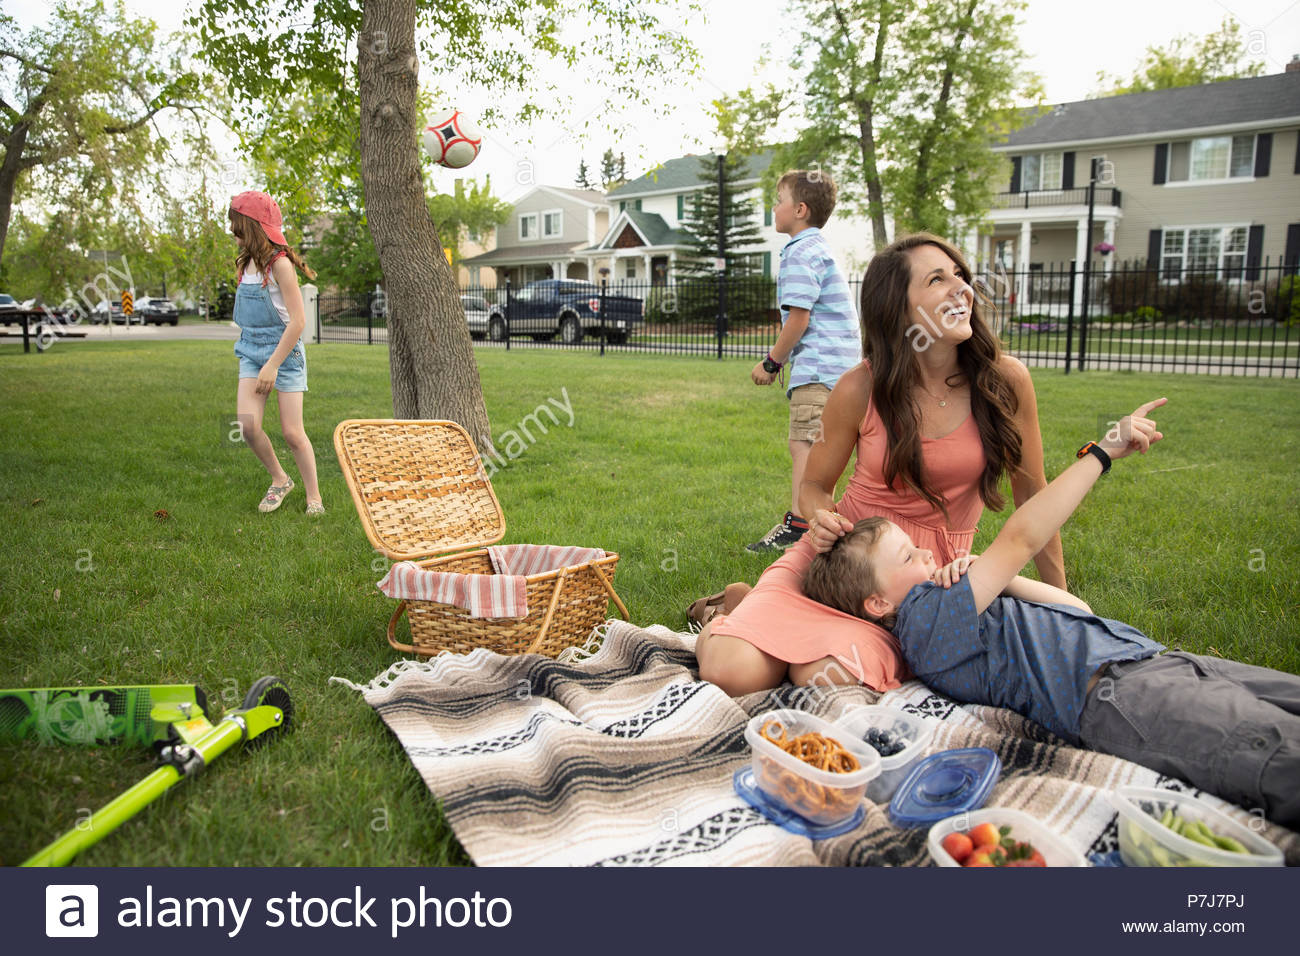 Affectionate mother and son relaxing, enjoying picnic in park - Stock Image